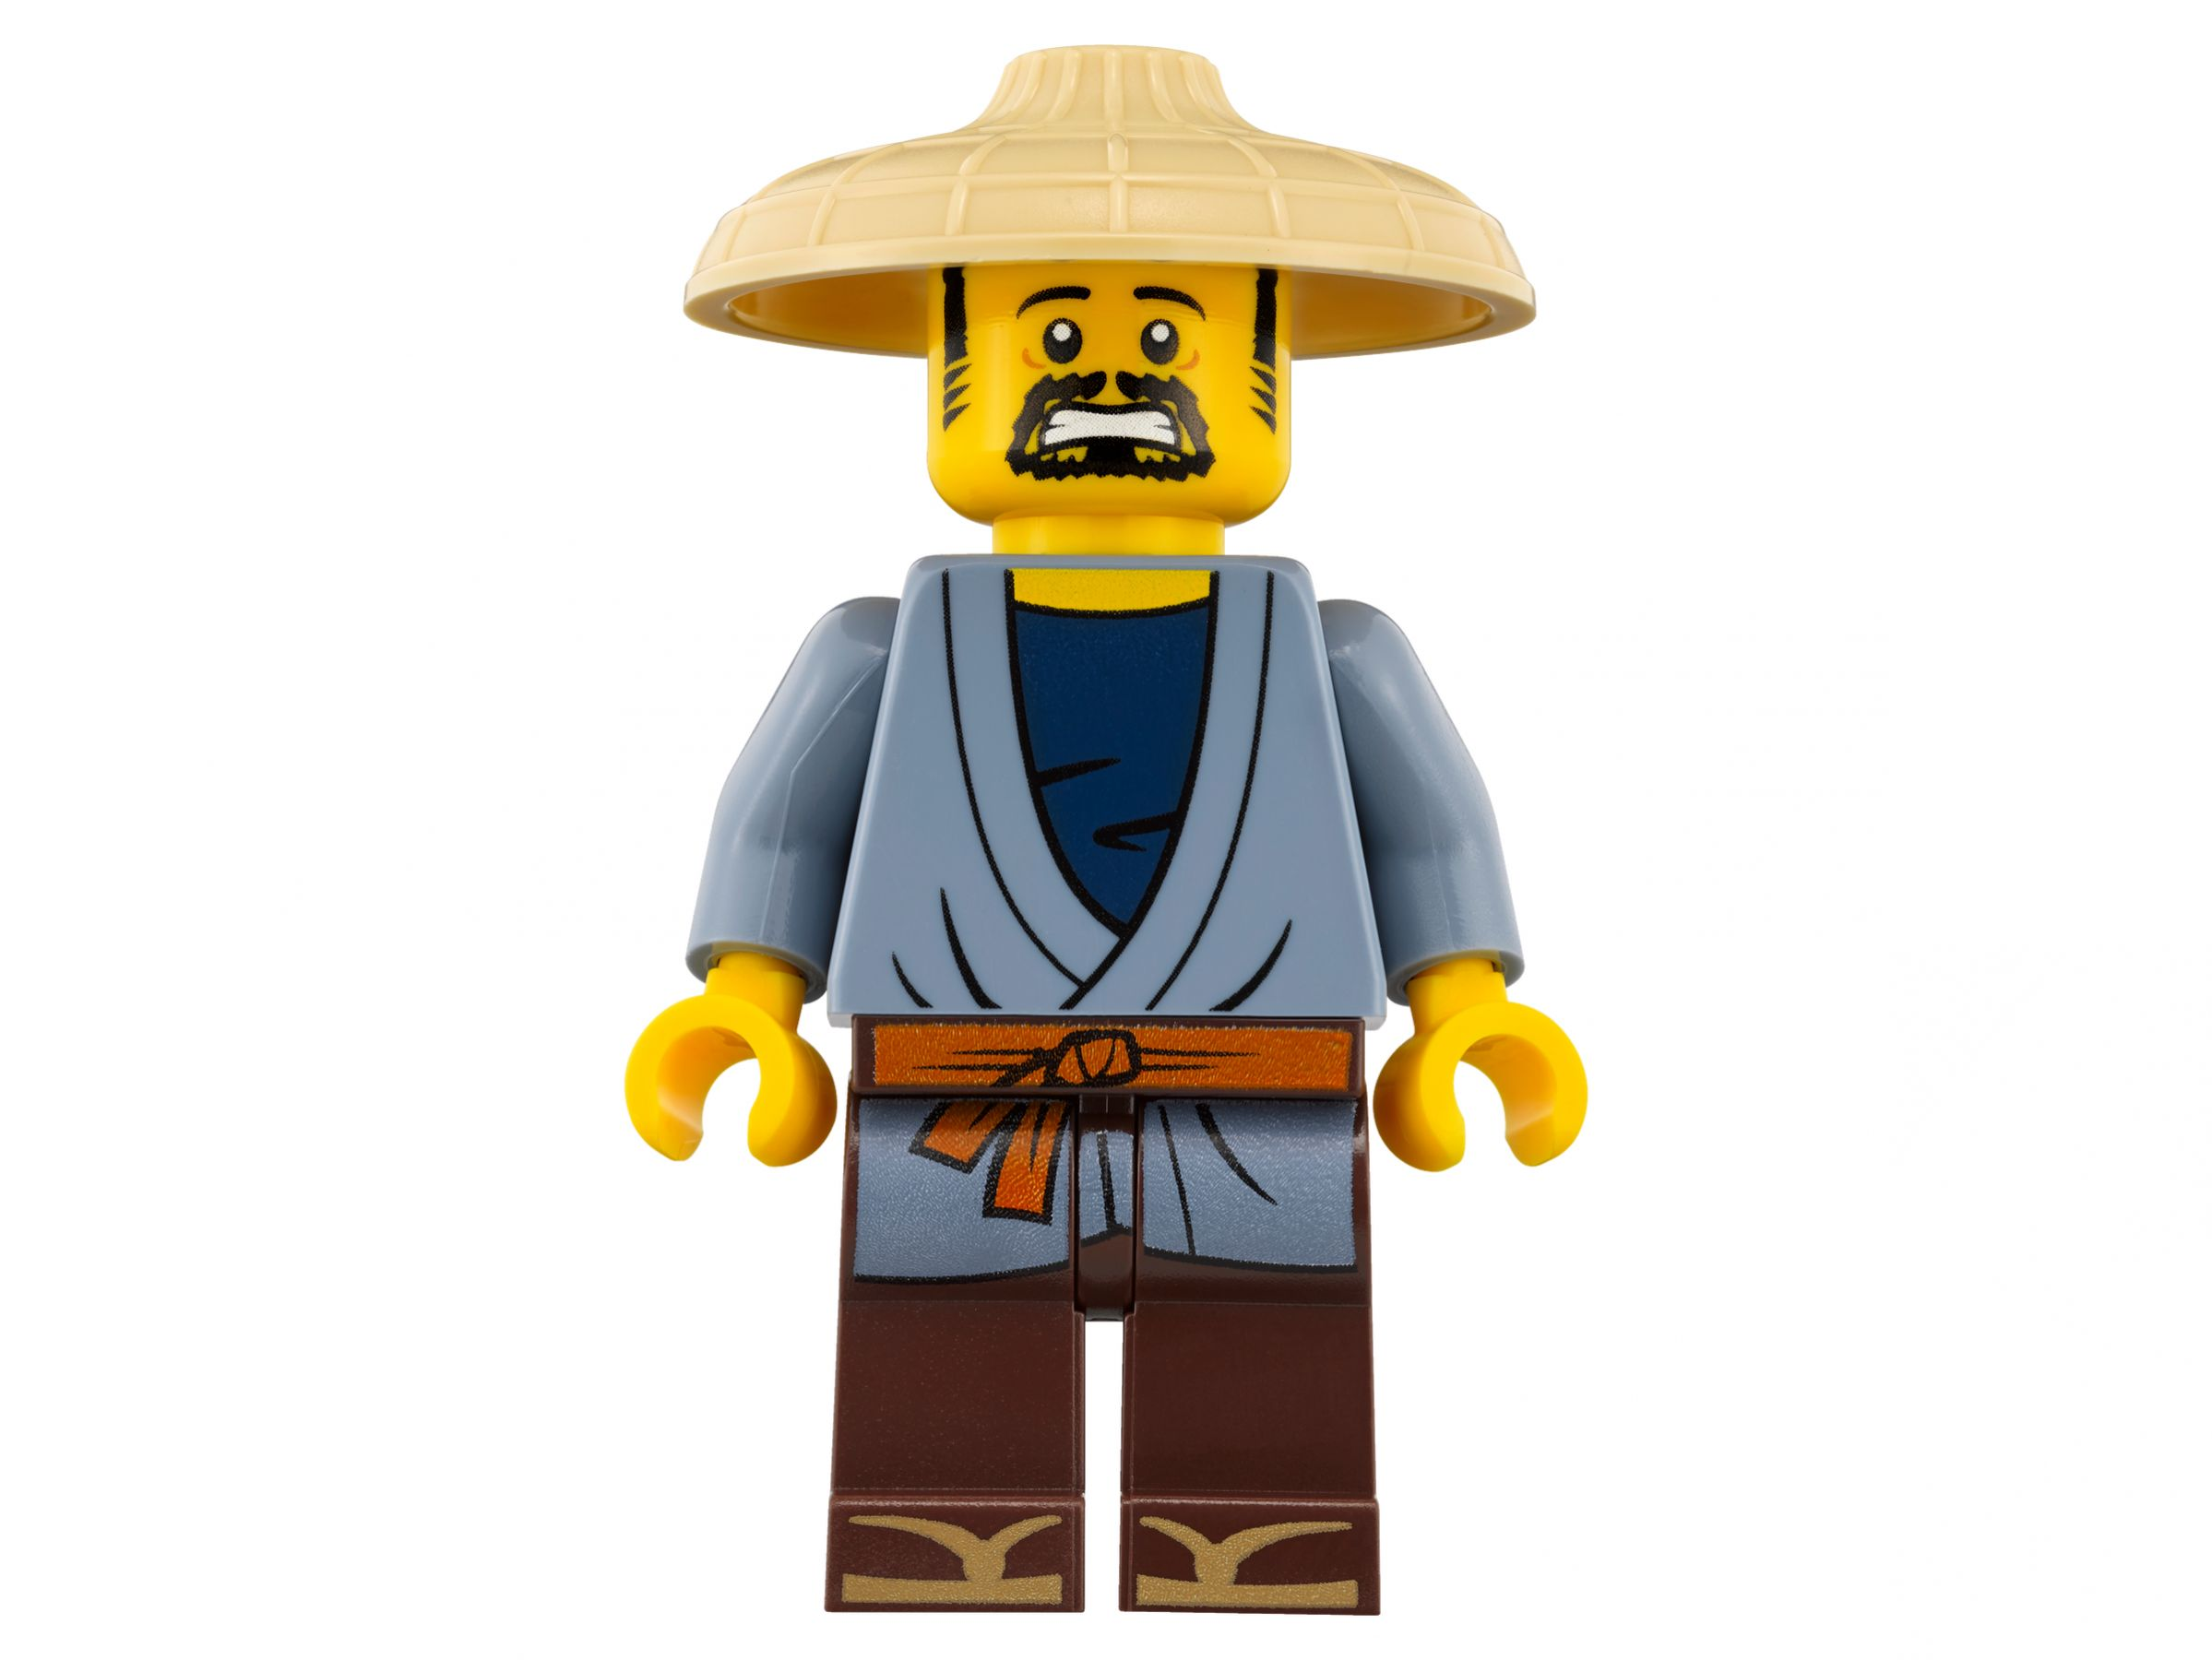 LEGO The LEGO Ninjago Movie 70616 Zane's Eis-Raupe LEGO_70616_alt11.jpg